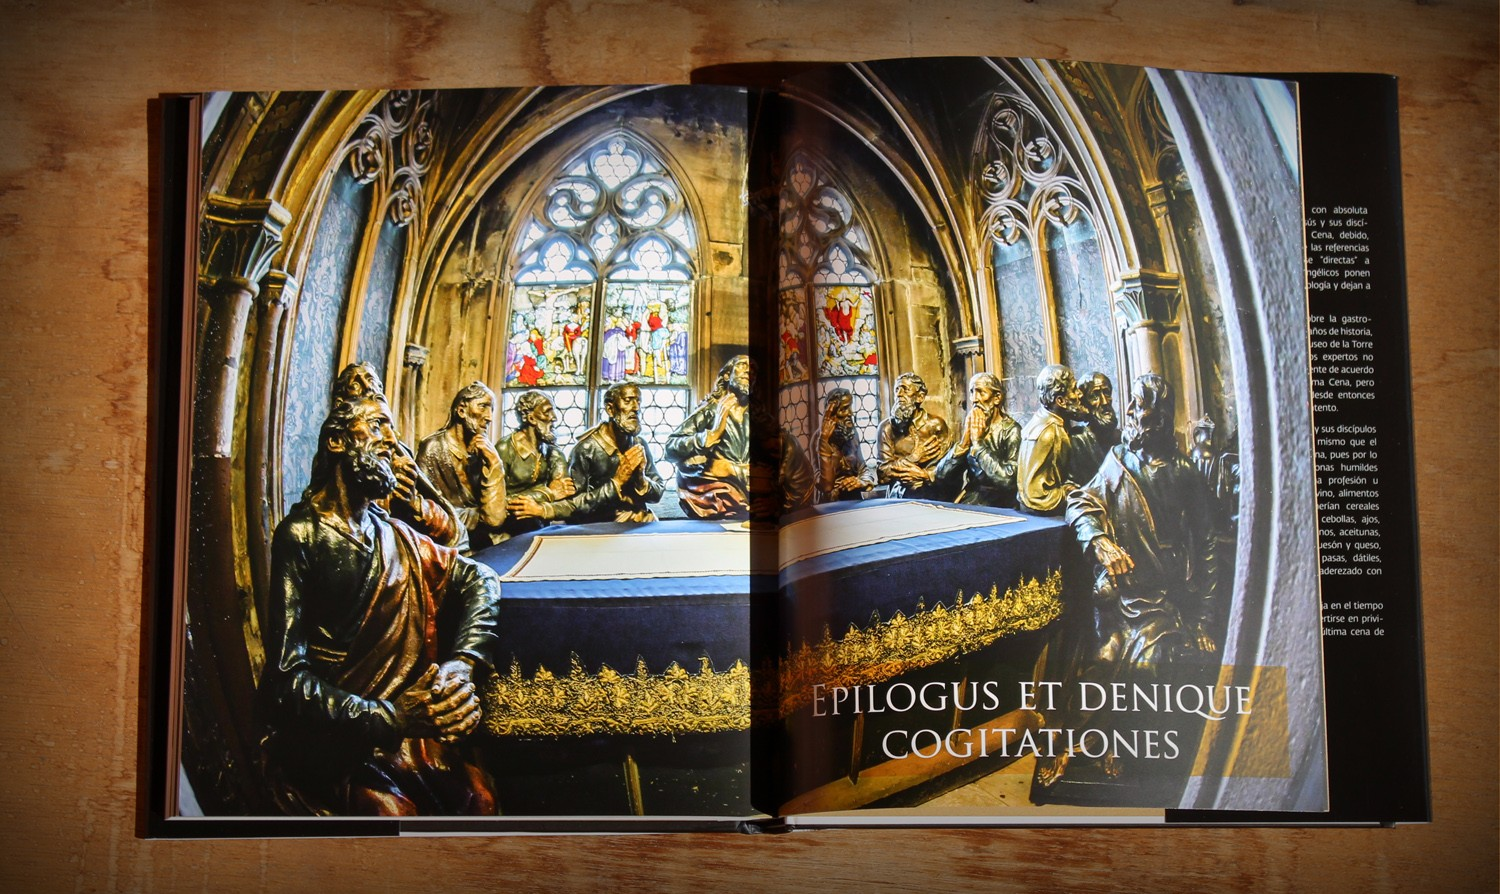 Inside the book The Last Supper, a book by Miguel Angel Almodovar